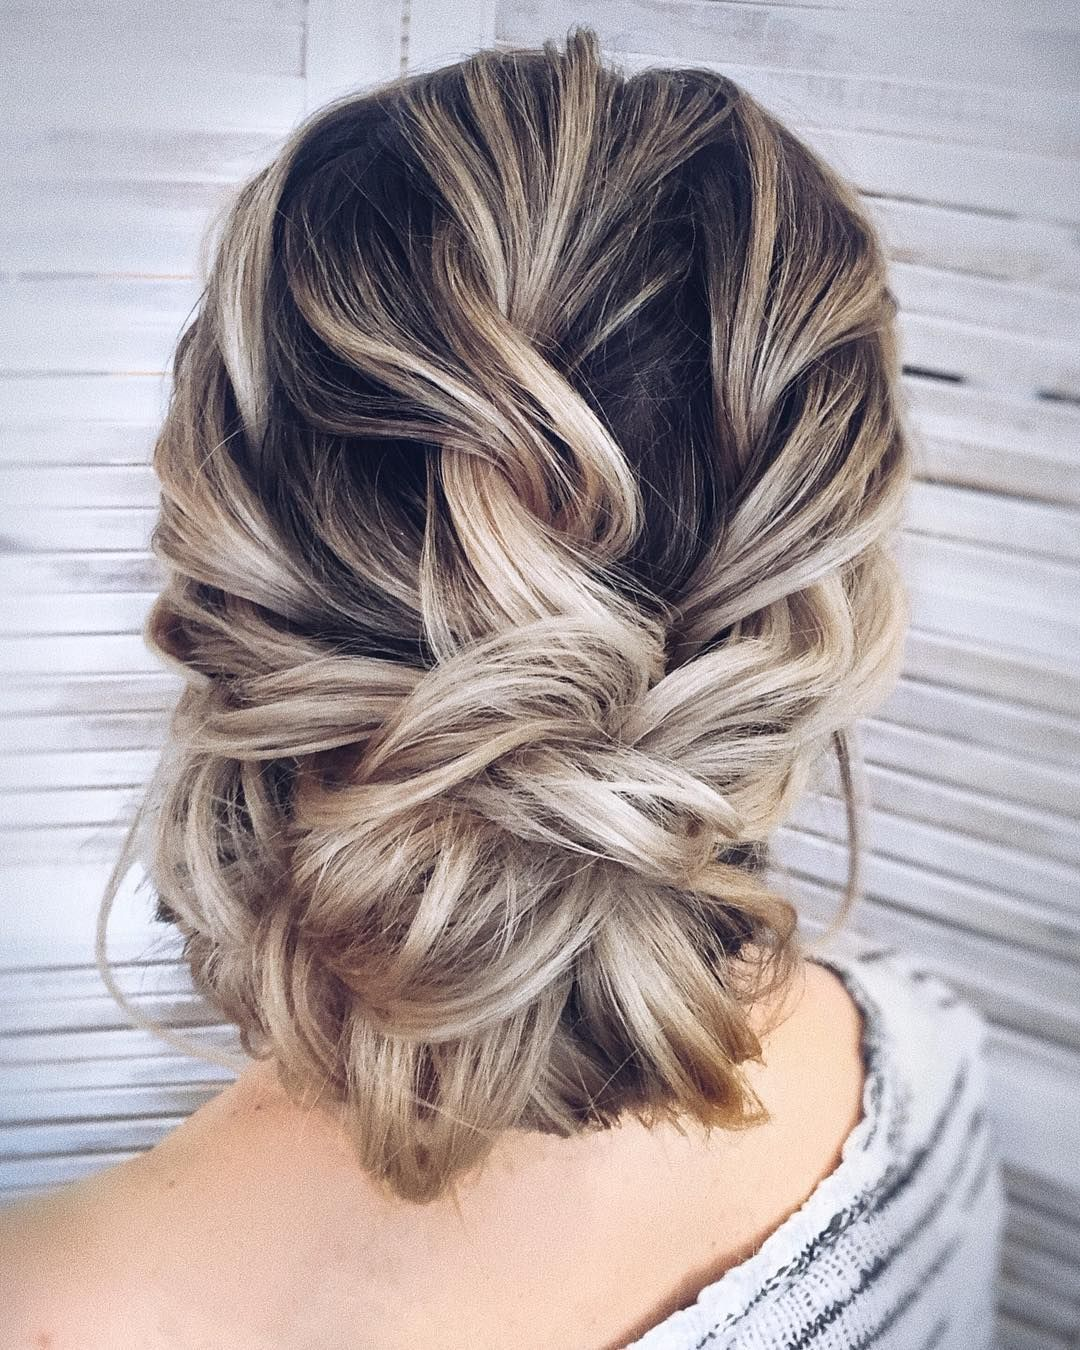 Messy Updo Hairstyles Simple 100 Gorgeous Wedding Hair From Ceremony To Reception  Messy Updo